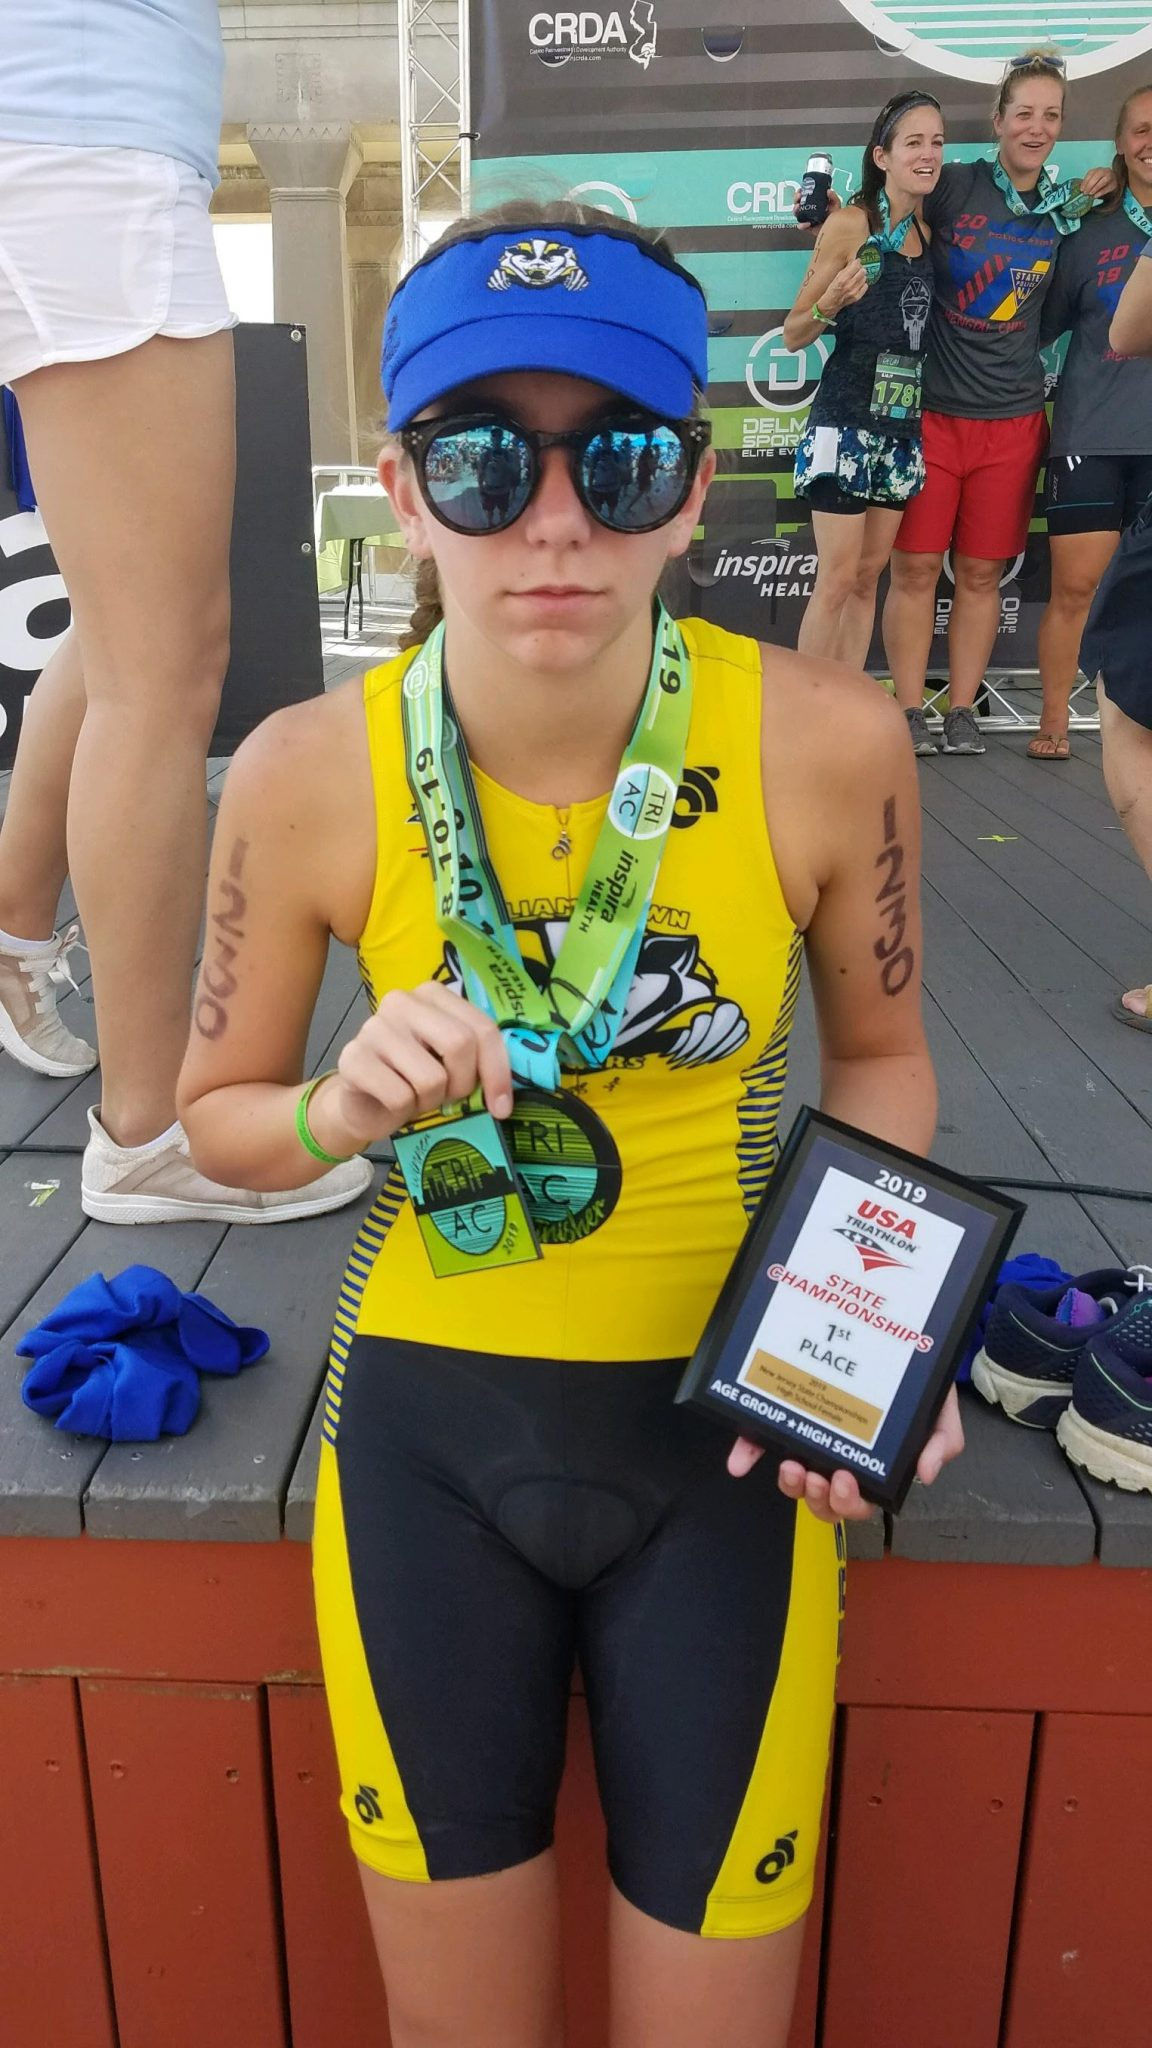 A tremendous tri-athlete - The Sun Newspapers